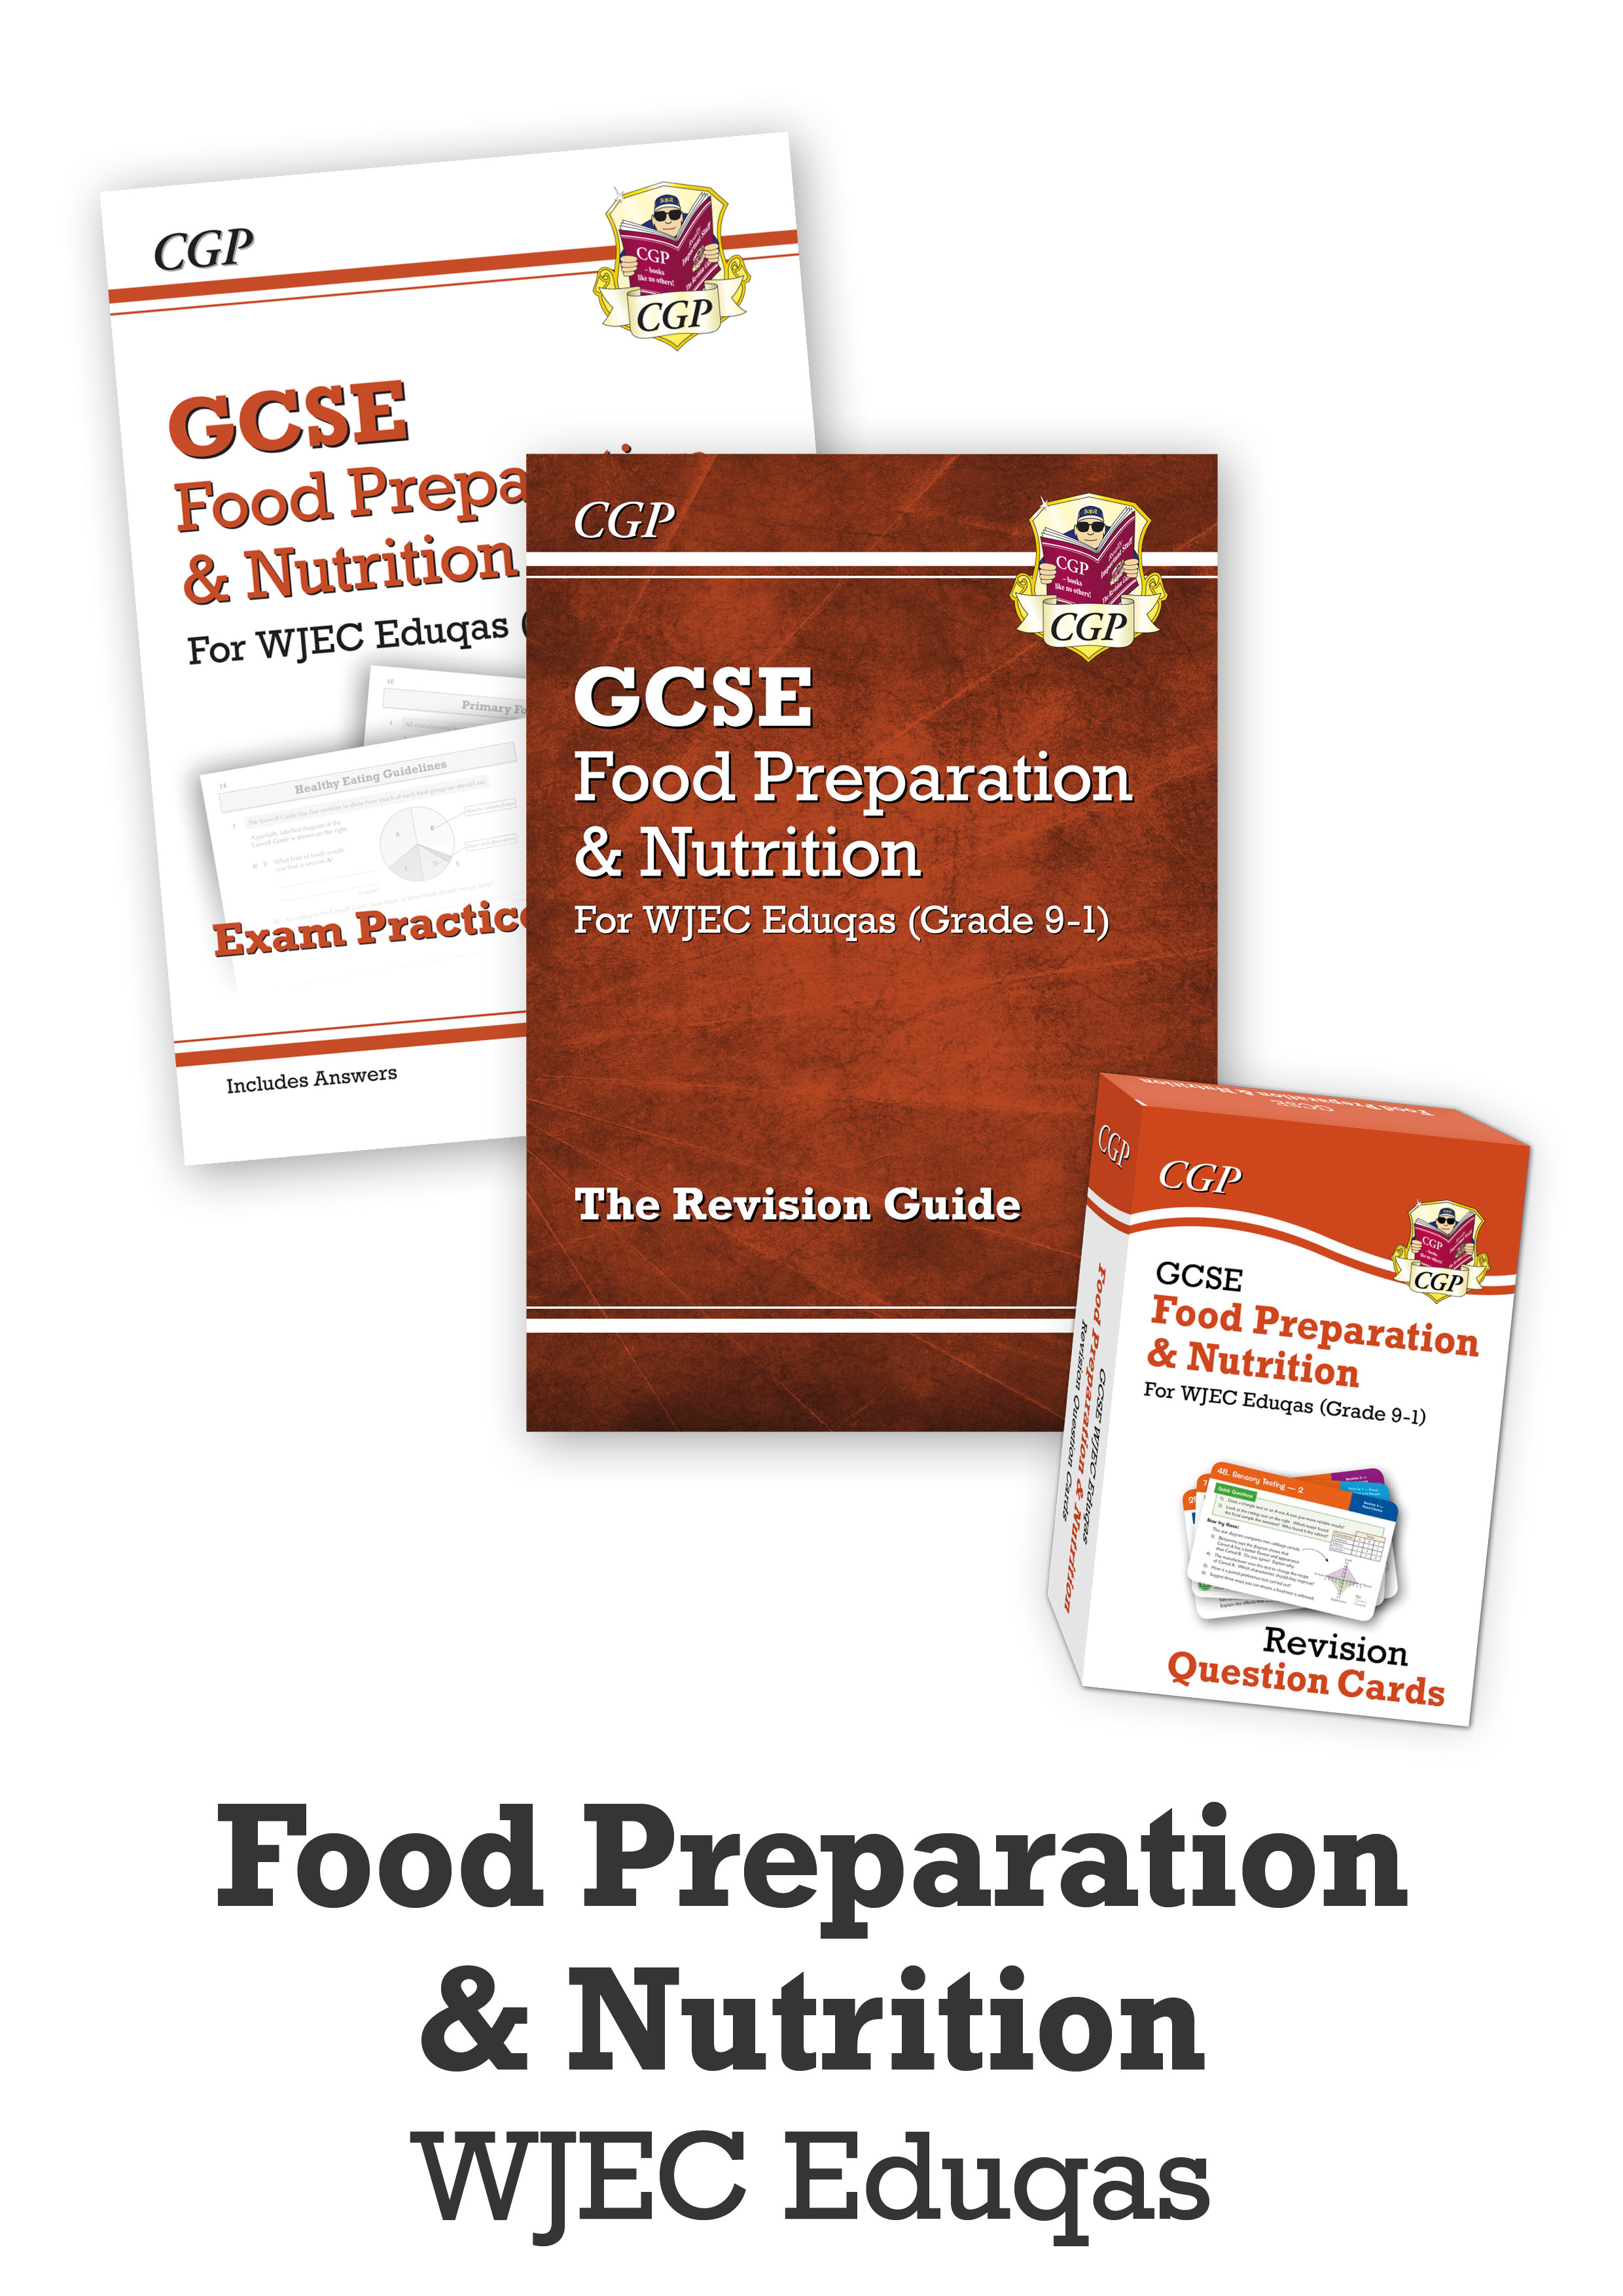 FNWCUB41 - GCSE Essentials Bundle: WJEC Eduqas Food Preparation & Nutrition